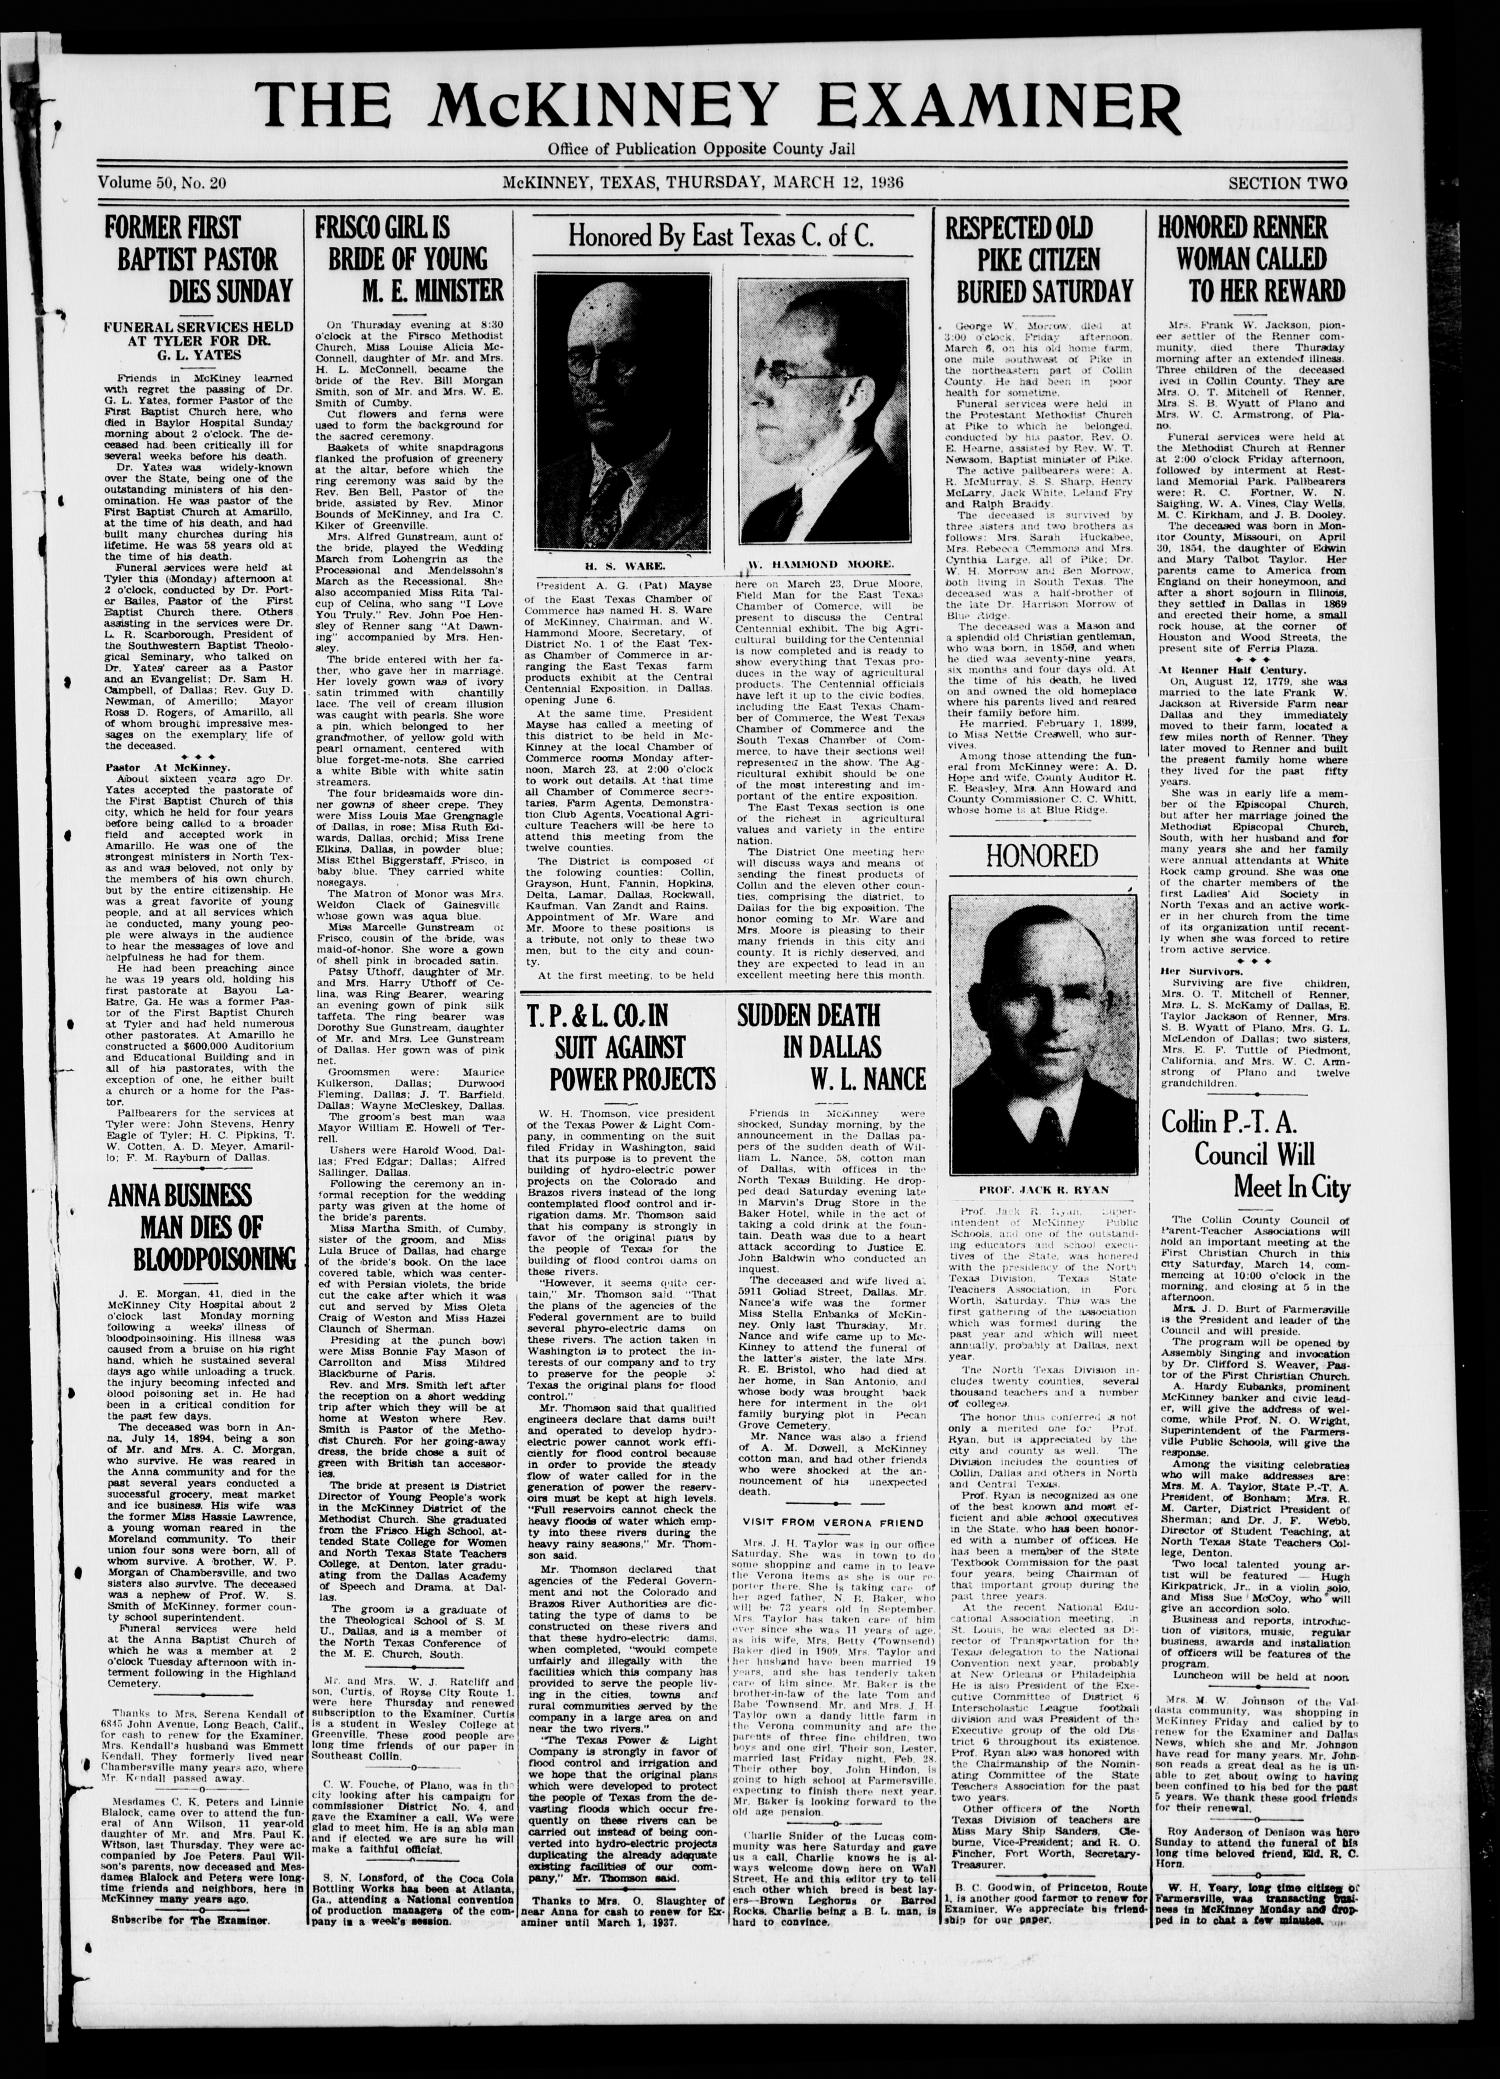 The McKinney Examiner. (McKinney, Tex.), Vol. 50, No. 20, Ed. 1 Thursday, March 12, 1936                                                                                                      [Sequence #]: 1 of 10